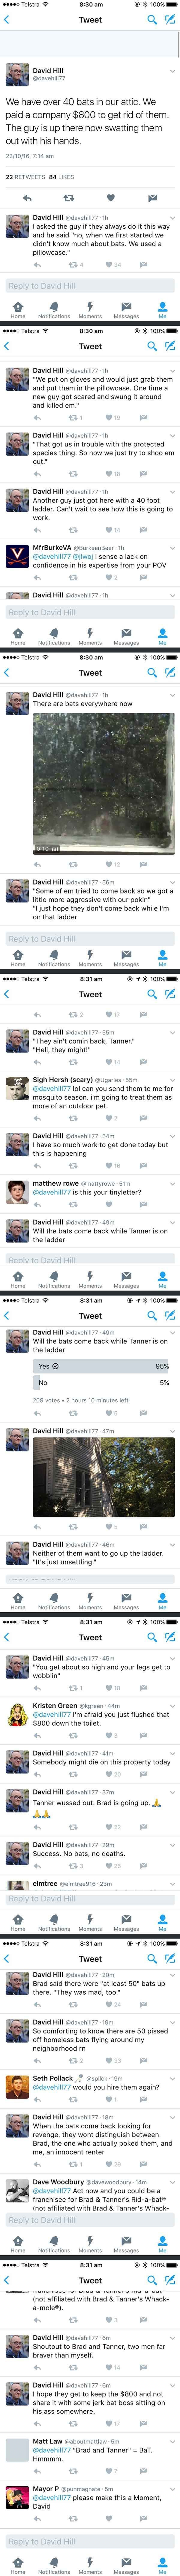 Bat problems? Call Brad and Tanner.